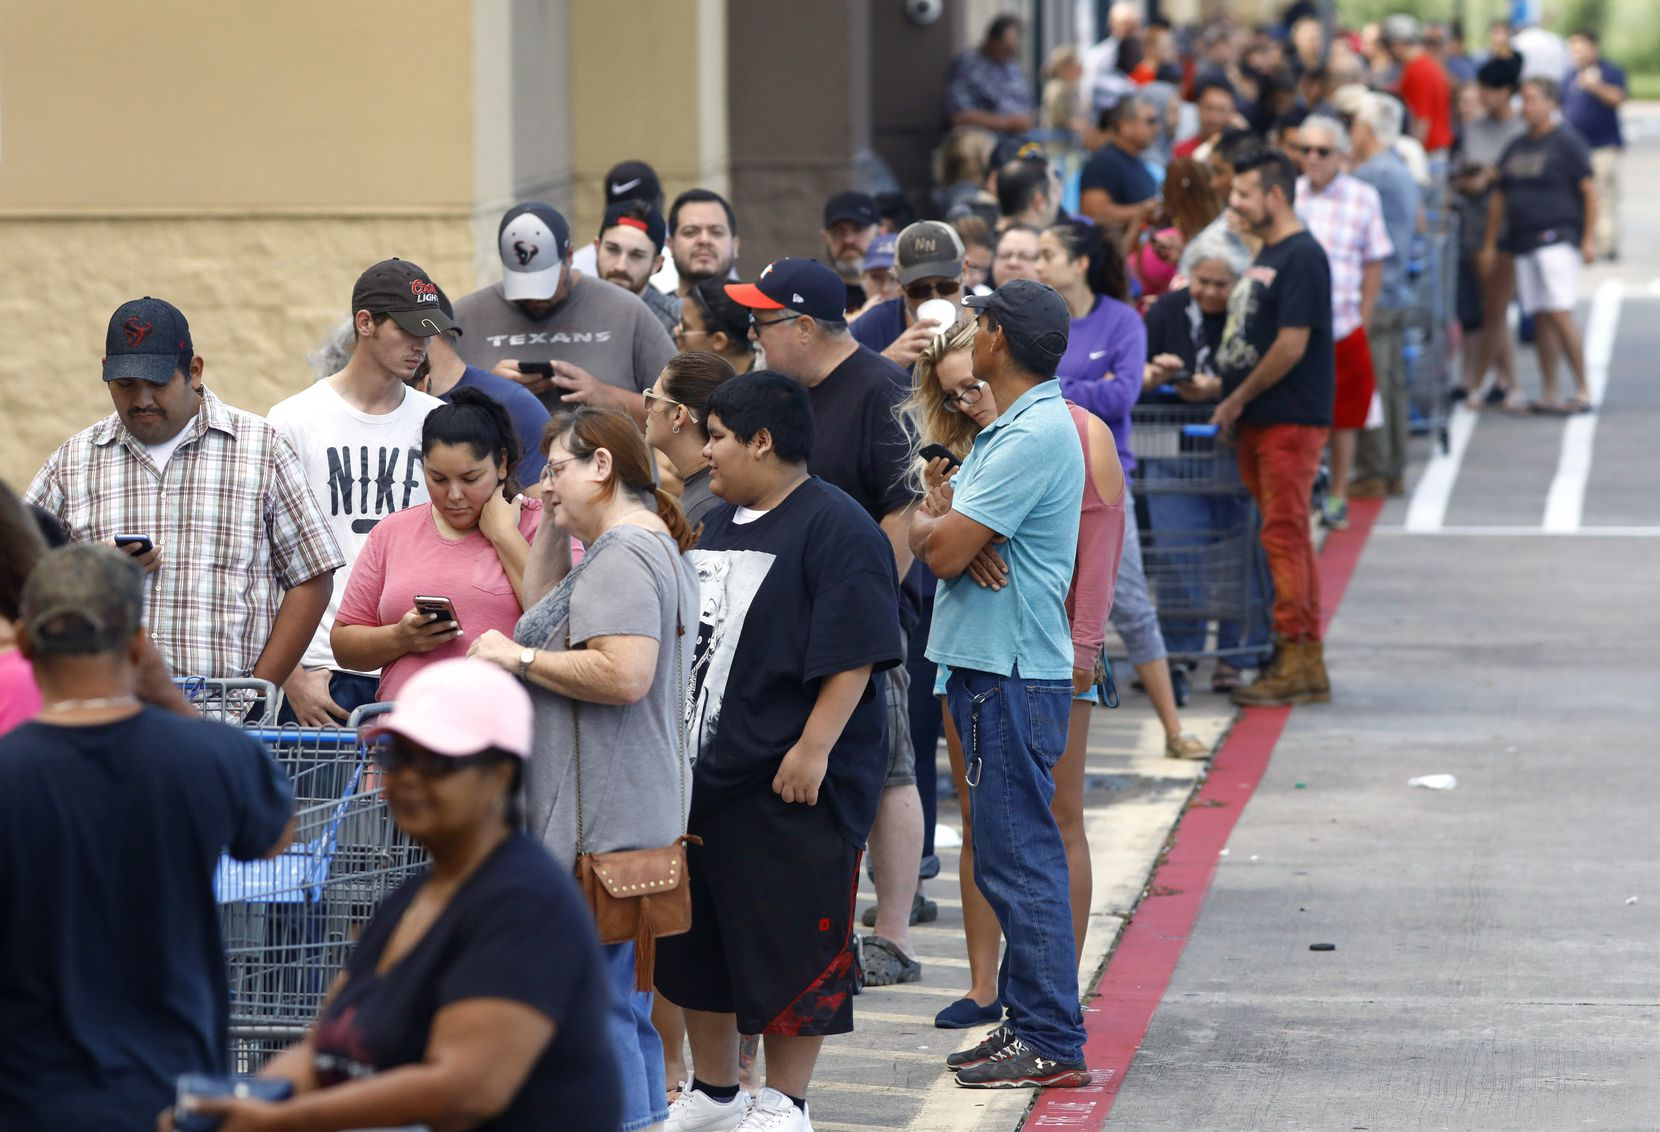 A long line stretched across the front of the Walmart on Hwy. 35 in Pearland, Texas, Wednesday, August 30, 2017, as they opened for the first time since Hurricane Harvey. Hundreds of people showed up to get groceries and supplies.